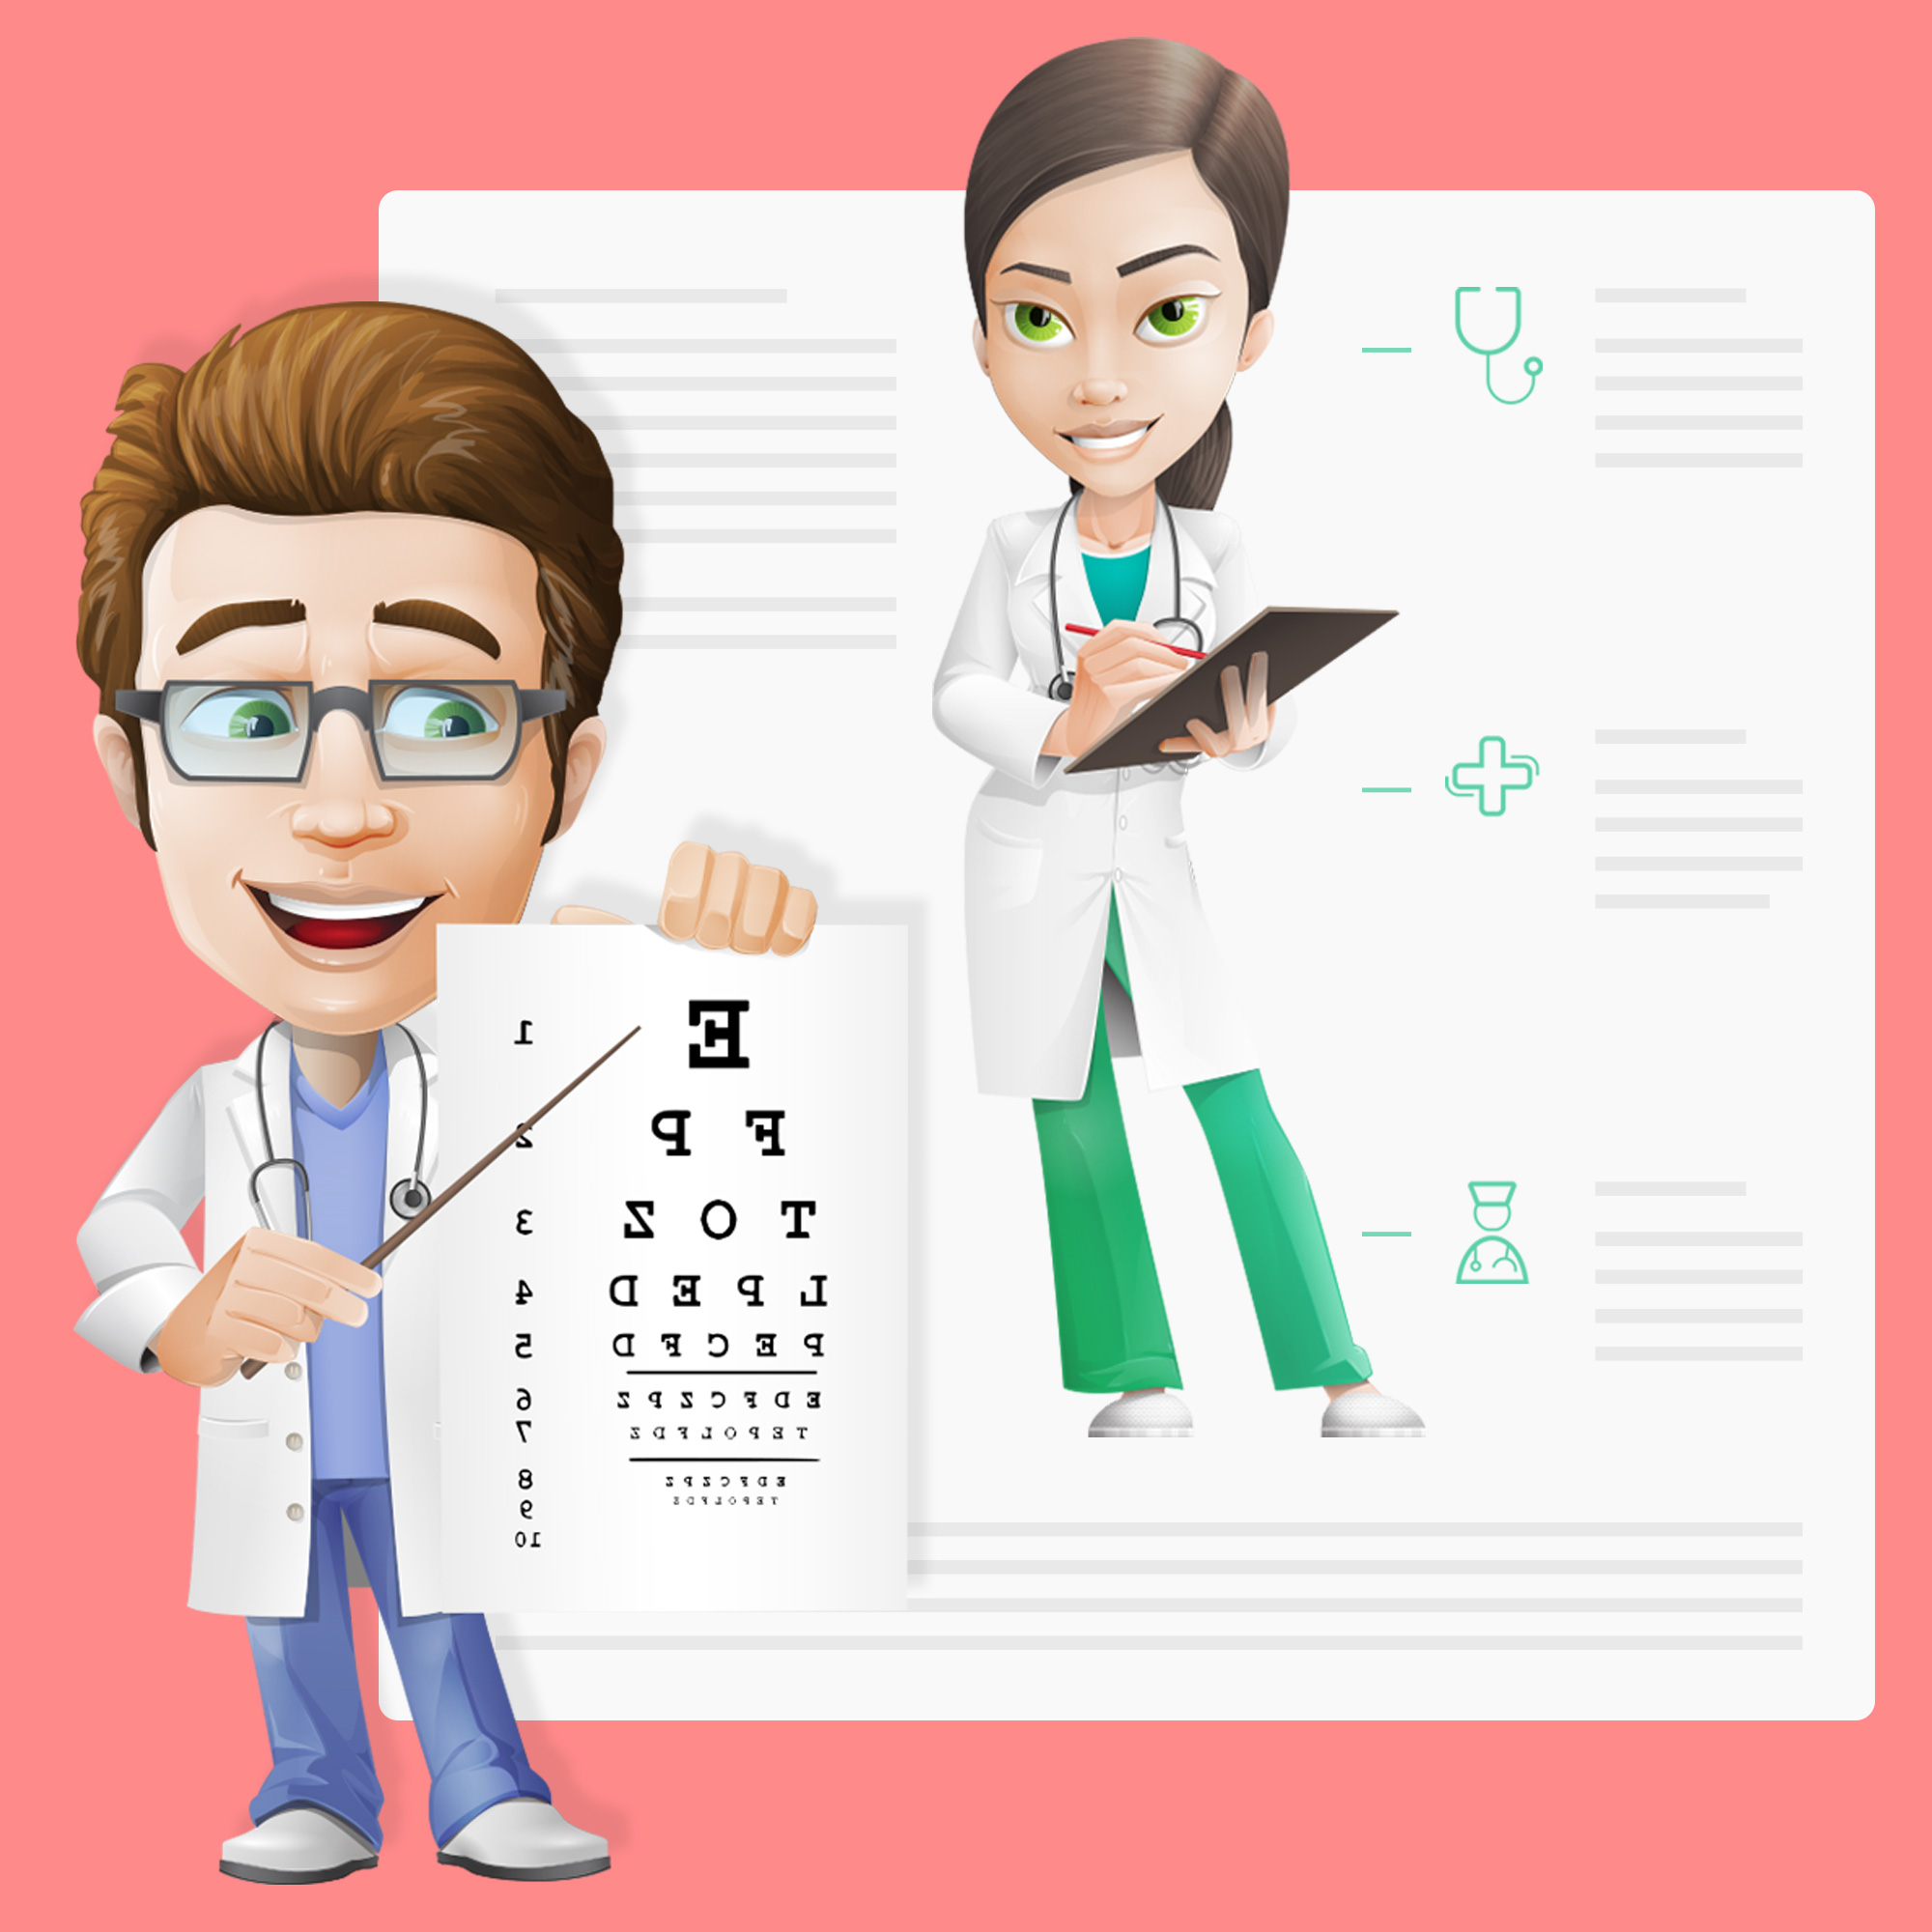 subject matter expert doctor cartoon characters by GraphicMama